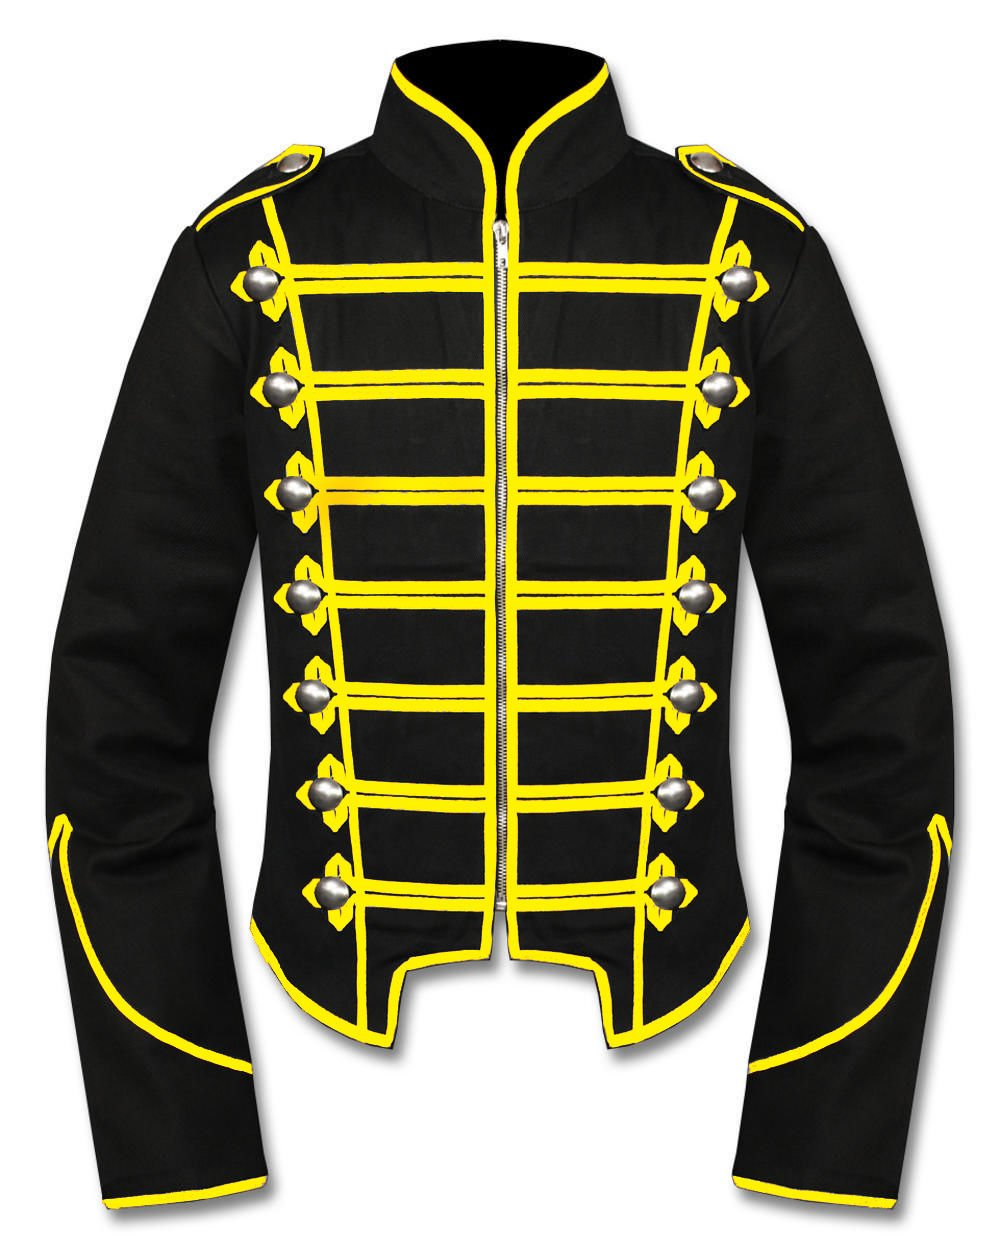 Handmade Men Black/Yellow Military Marching Band Drummer Jacket